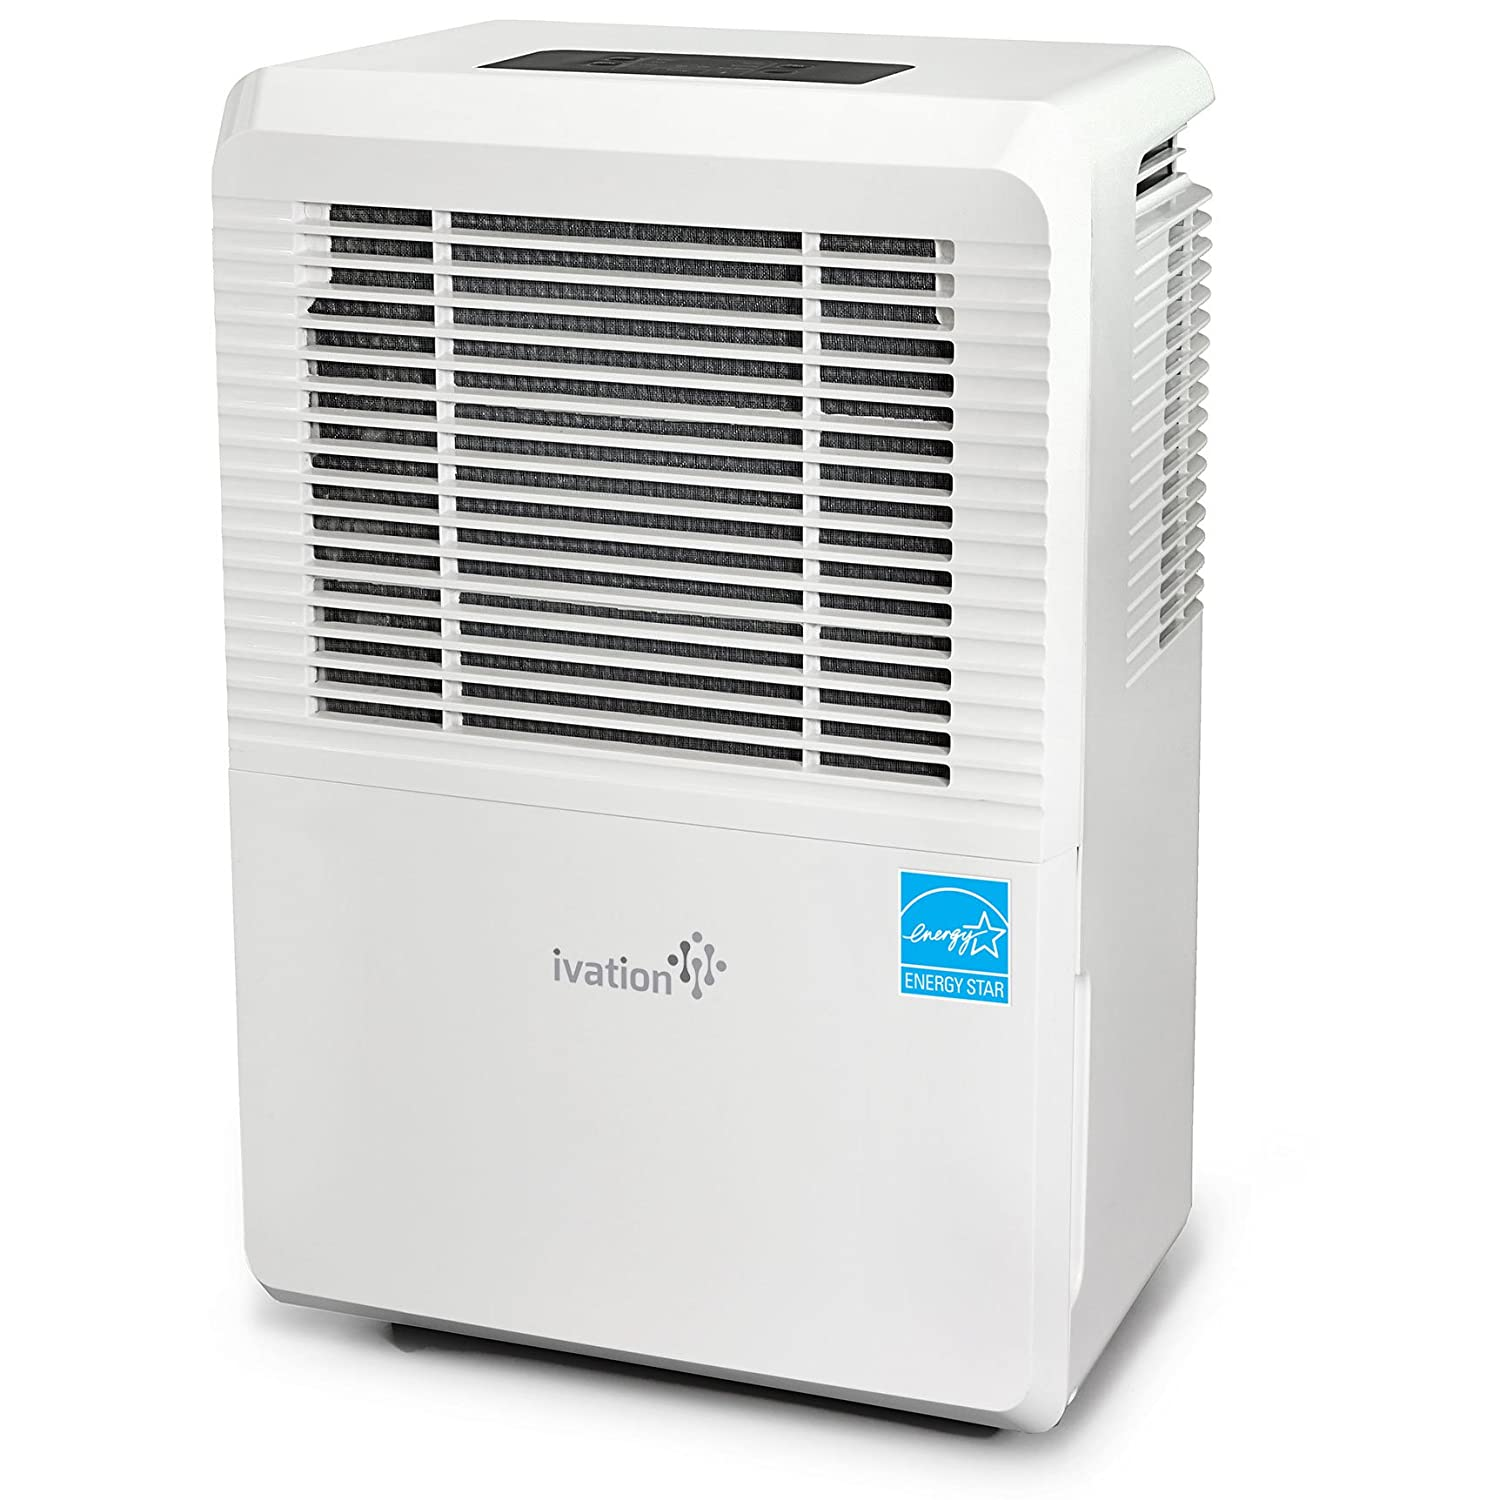 Ivation 70 Pint Energy Star Dehumidifier Review